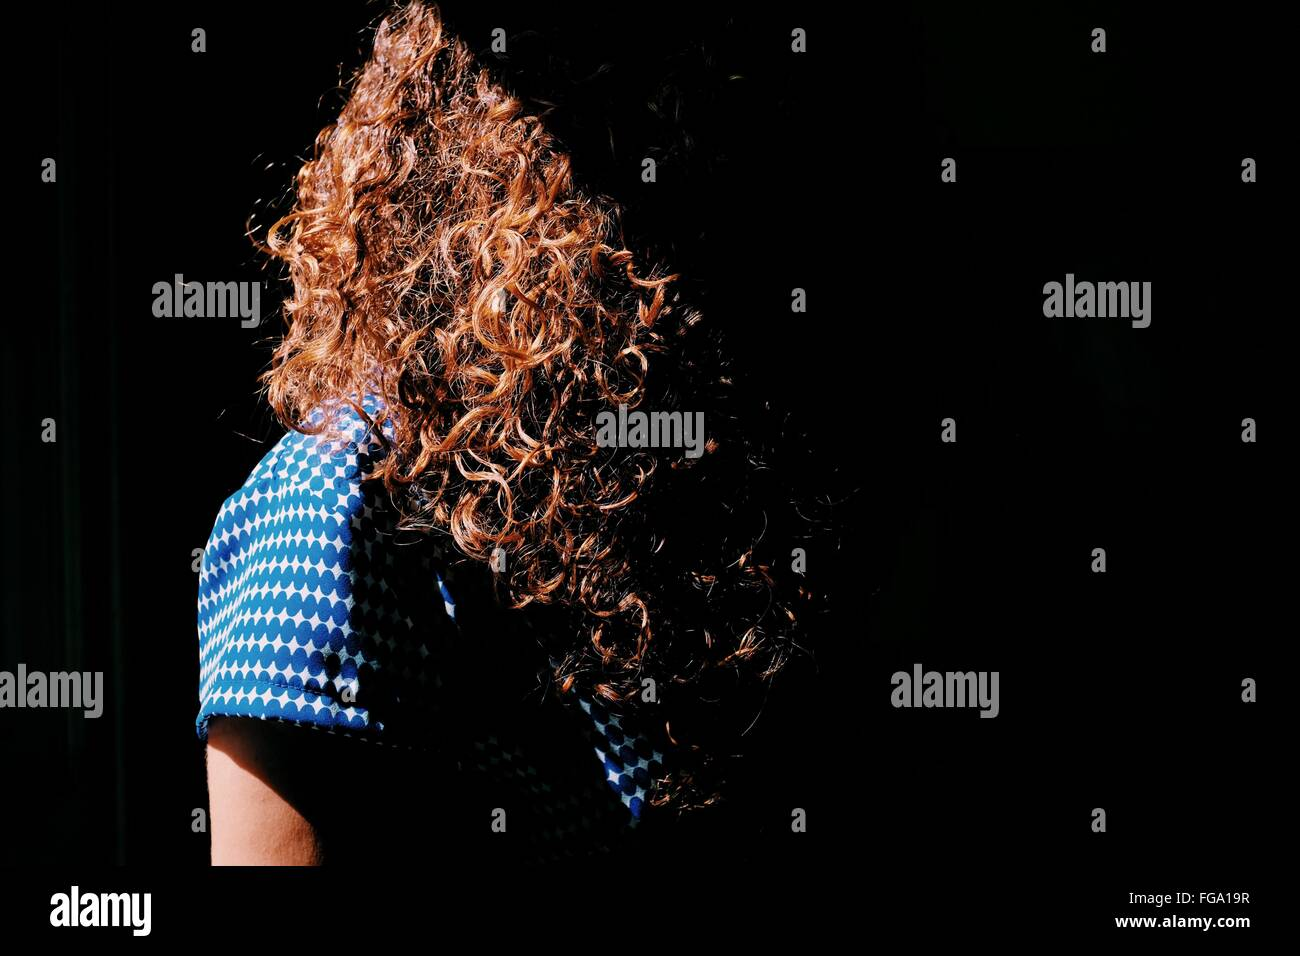 Woman With Curly Brown Hair In Sunlight - Stock Image